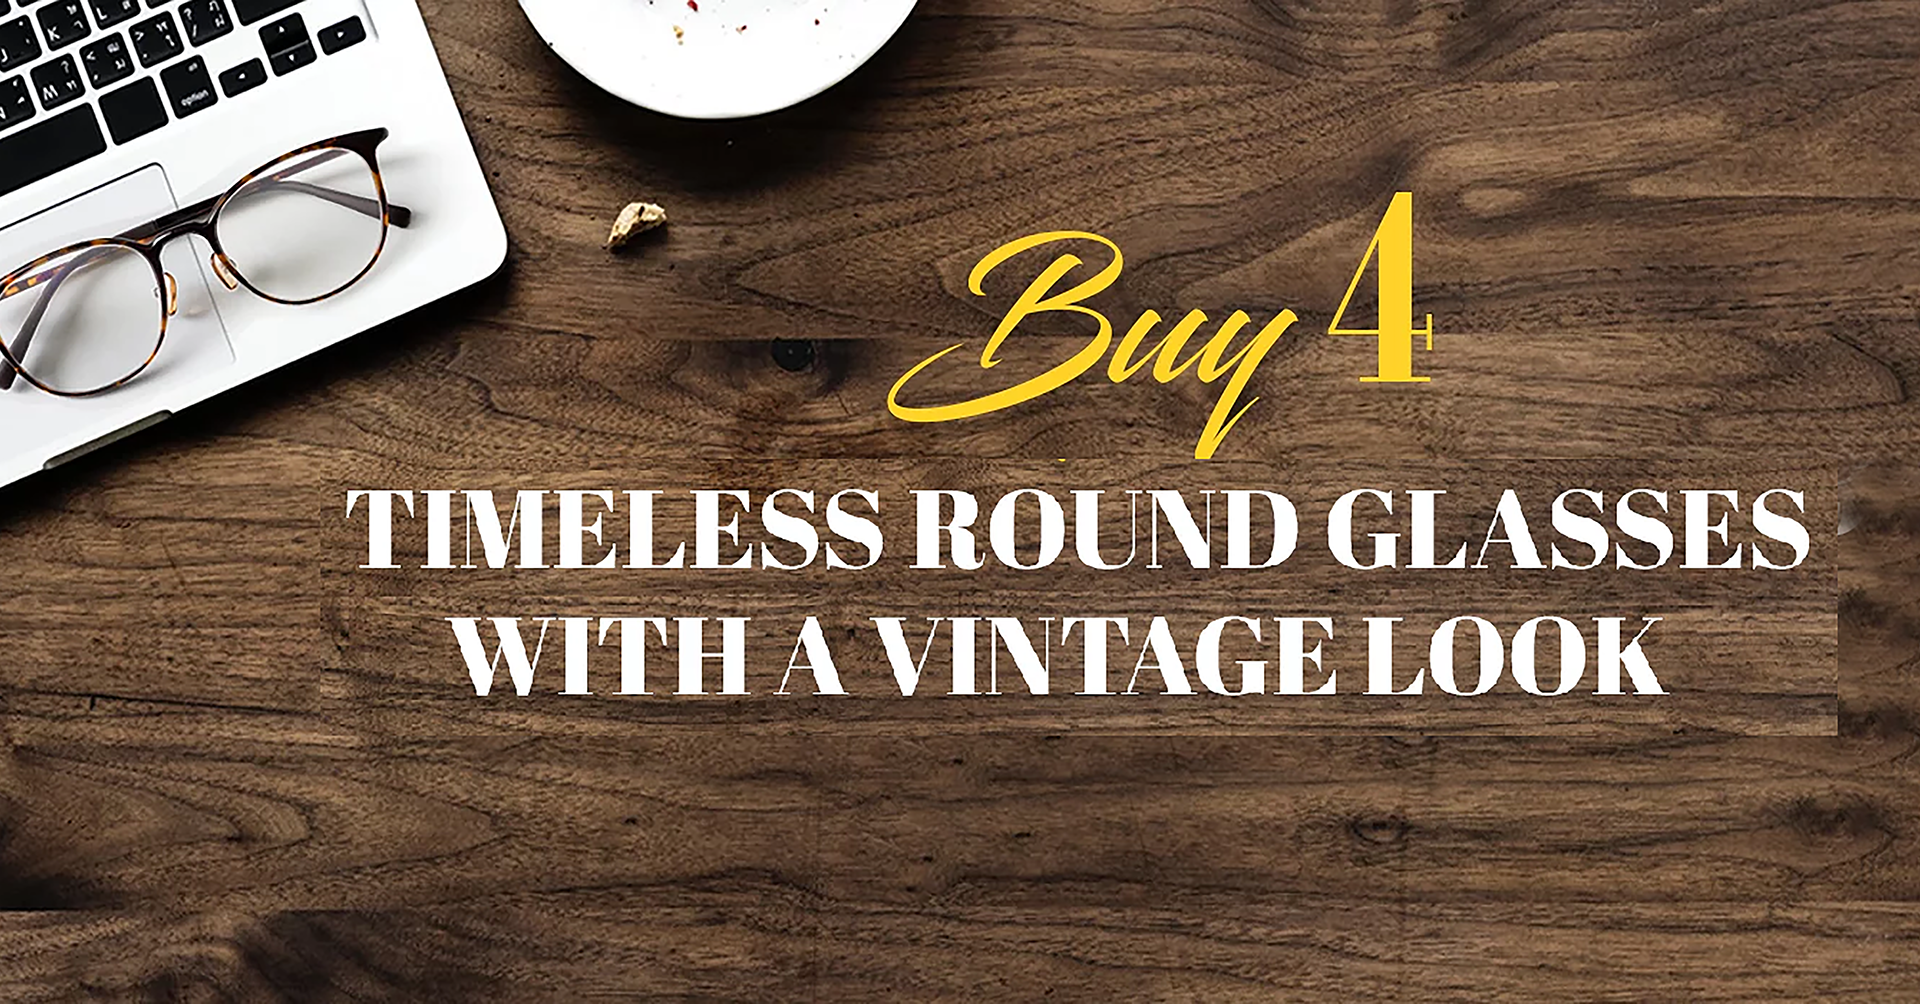 13)BUY 4 TIMELESS ROUND GLASSES WITH A VINTAGE LOOK